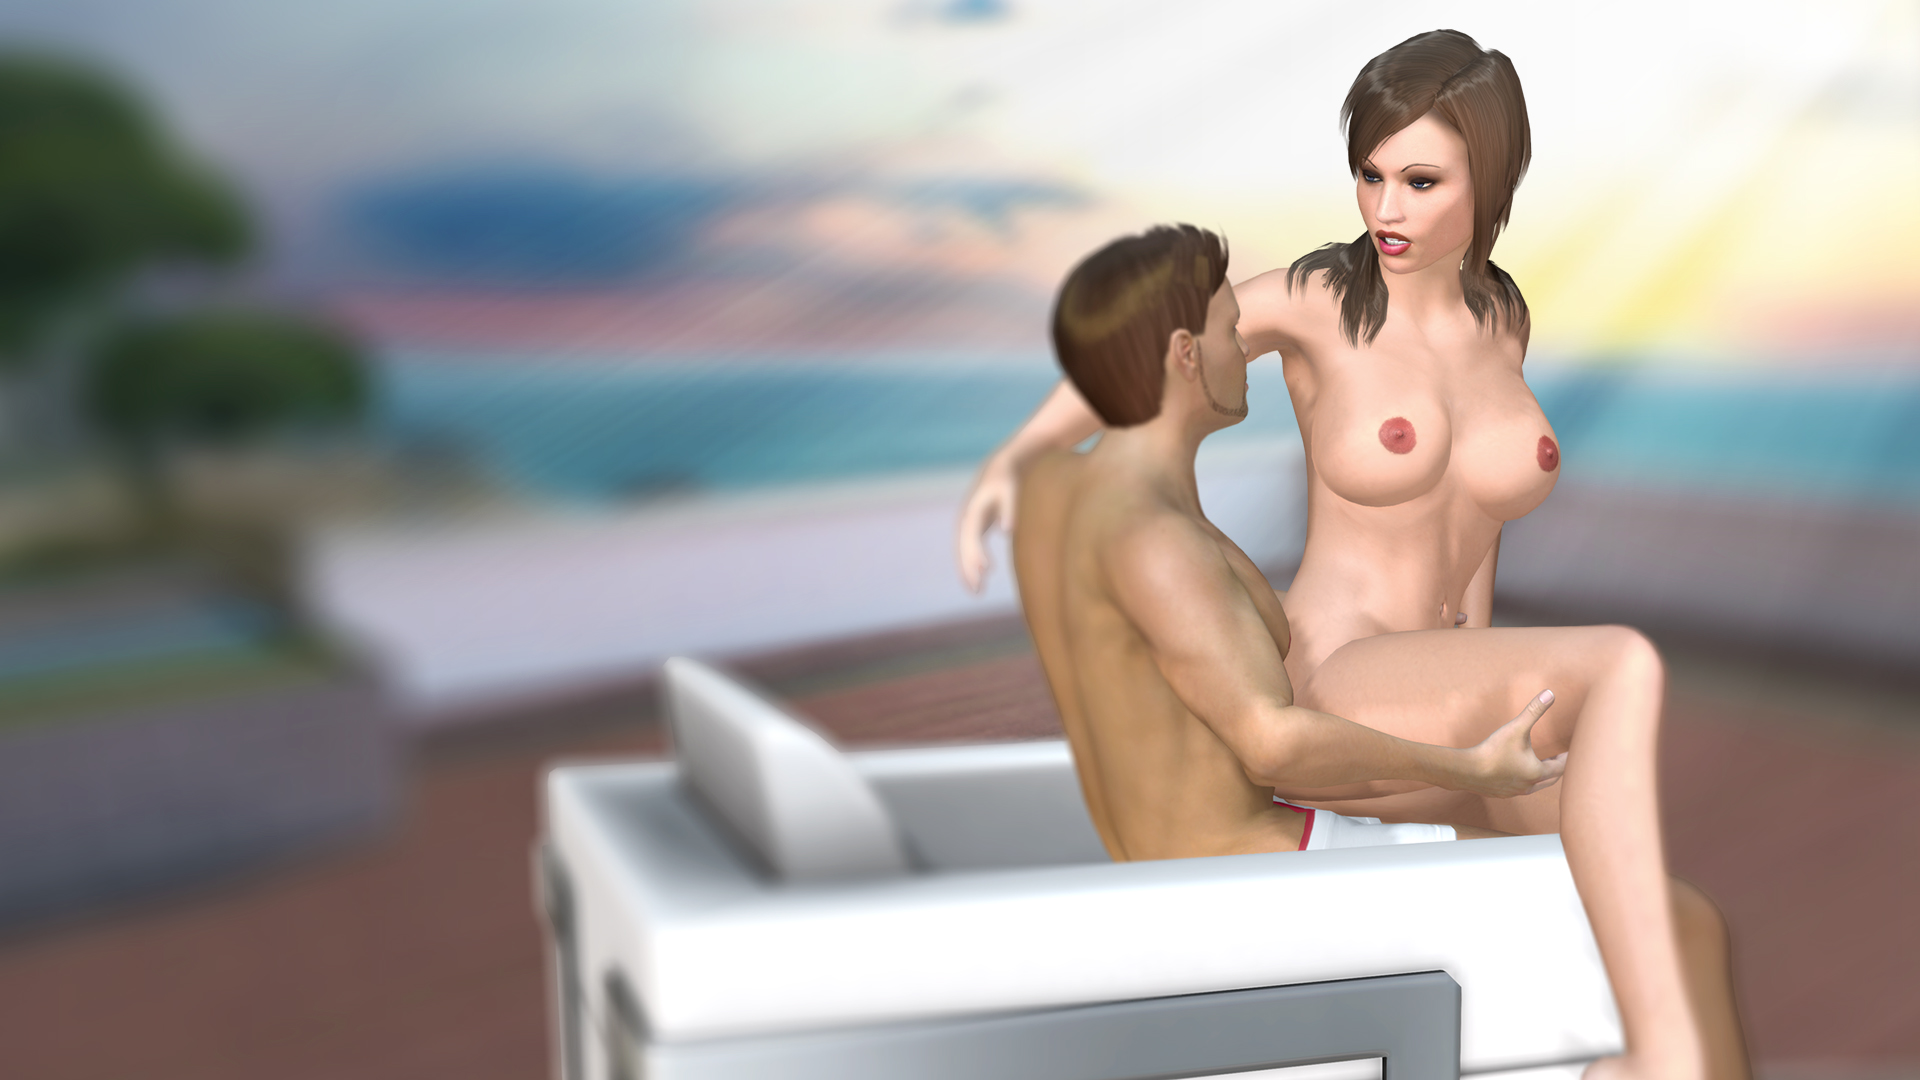 Sex chat 3d sexy picture